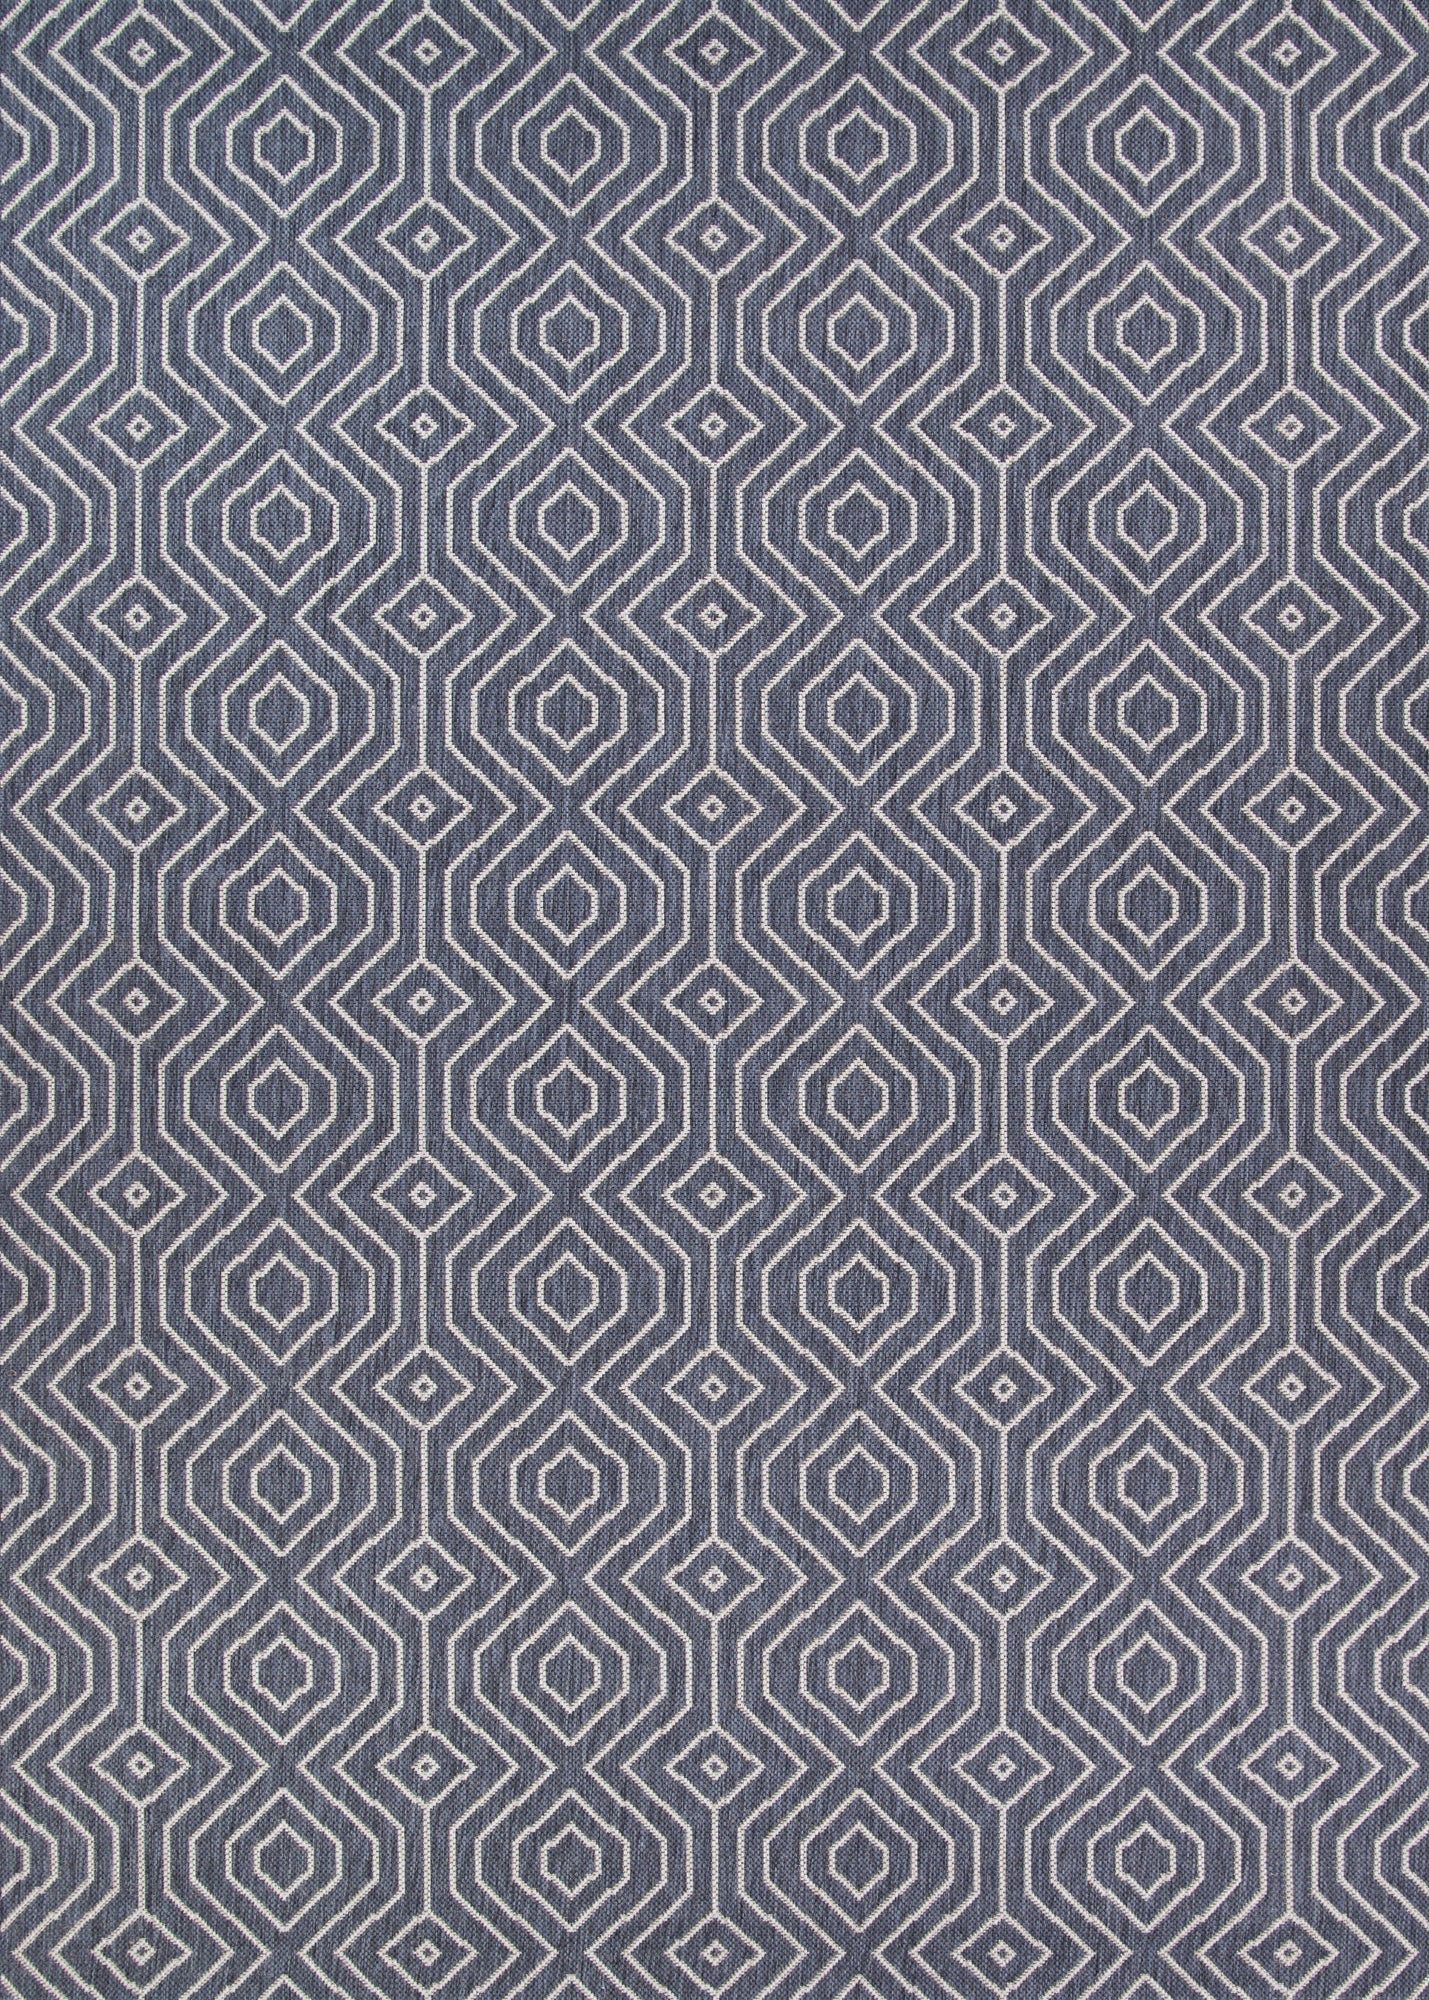 Afuera Actinide Modern Outdoor Rug-7642_3308-rug-shop-and-more